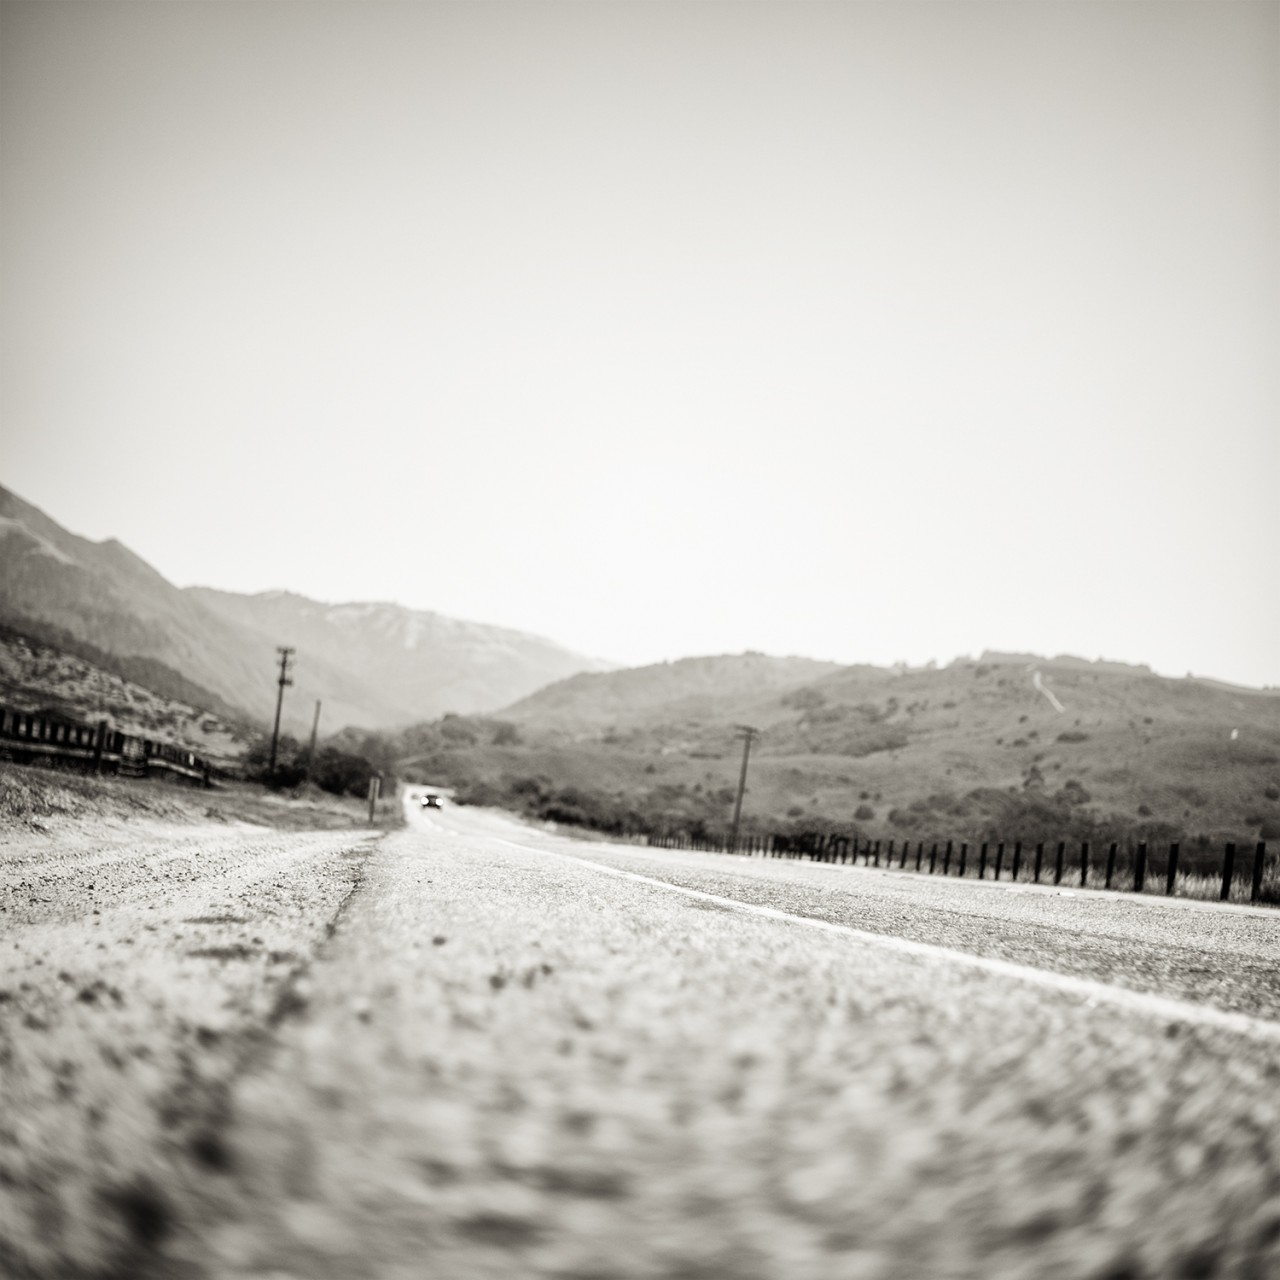 019_The Road